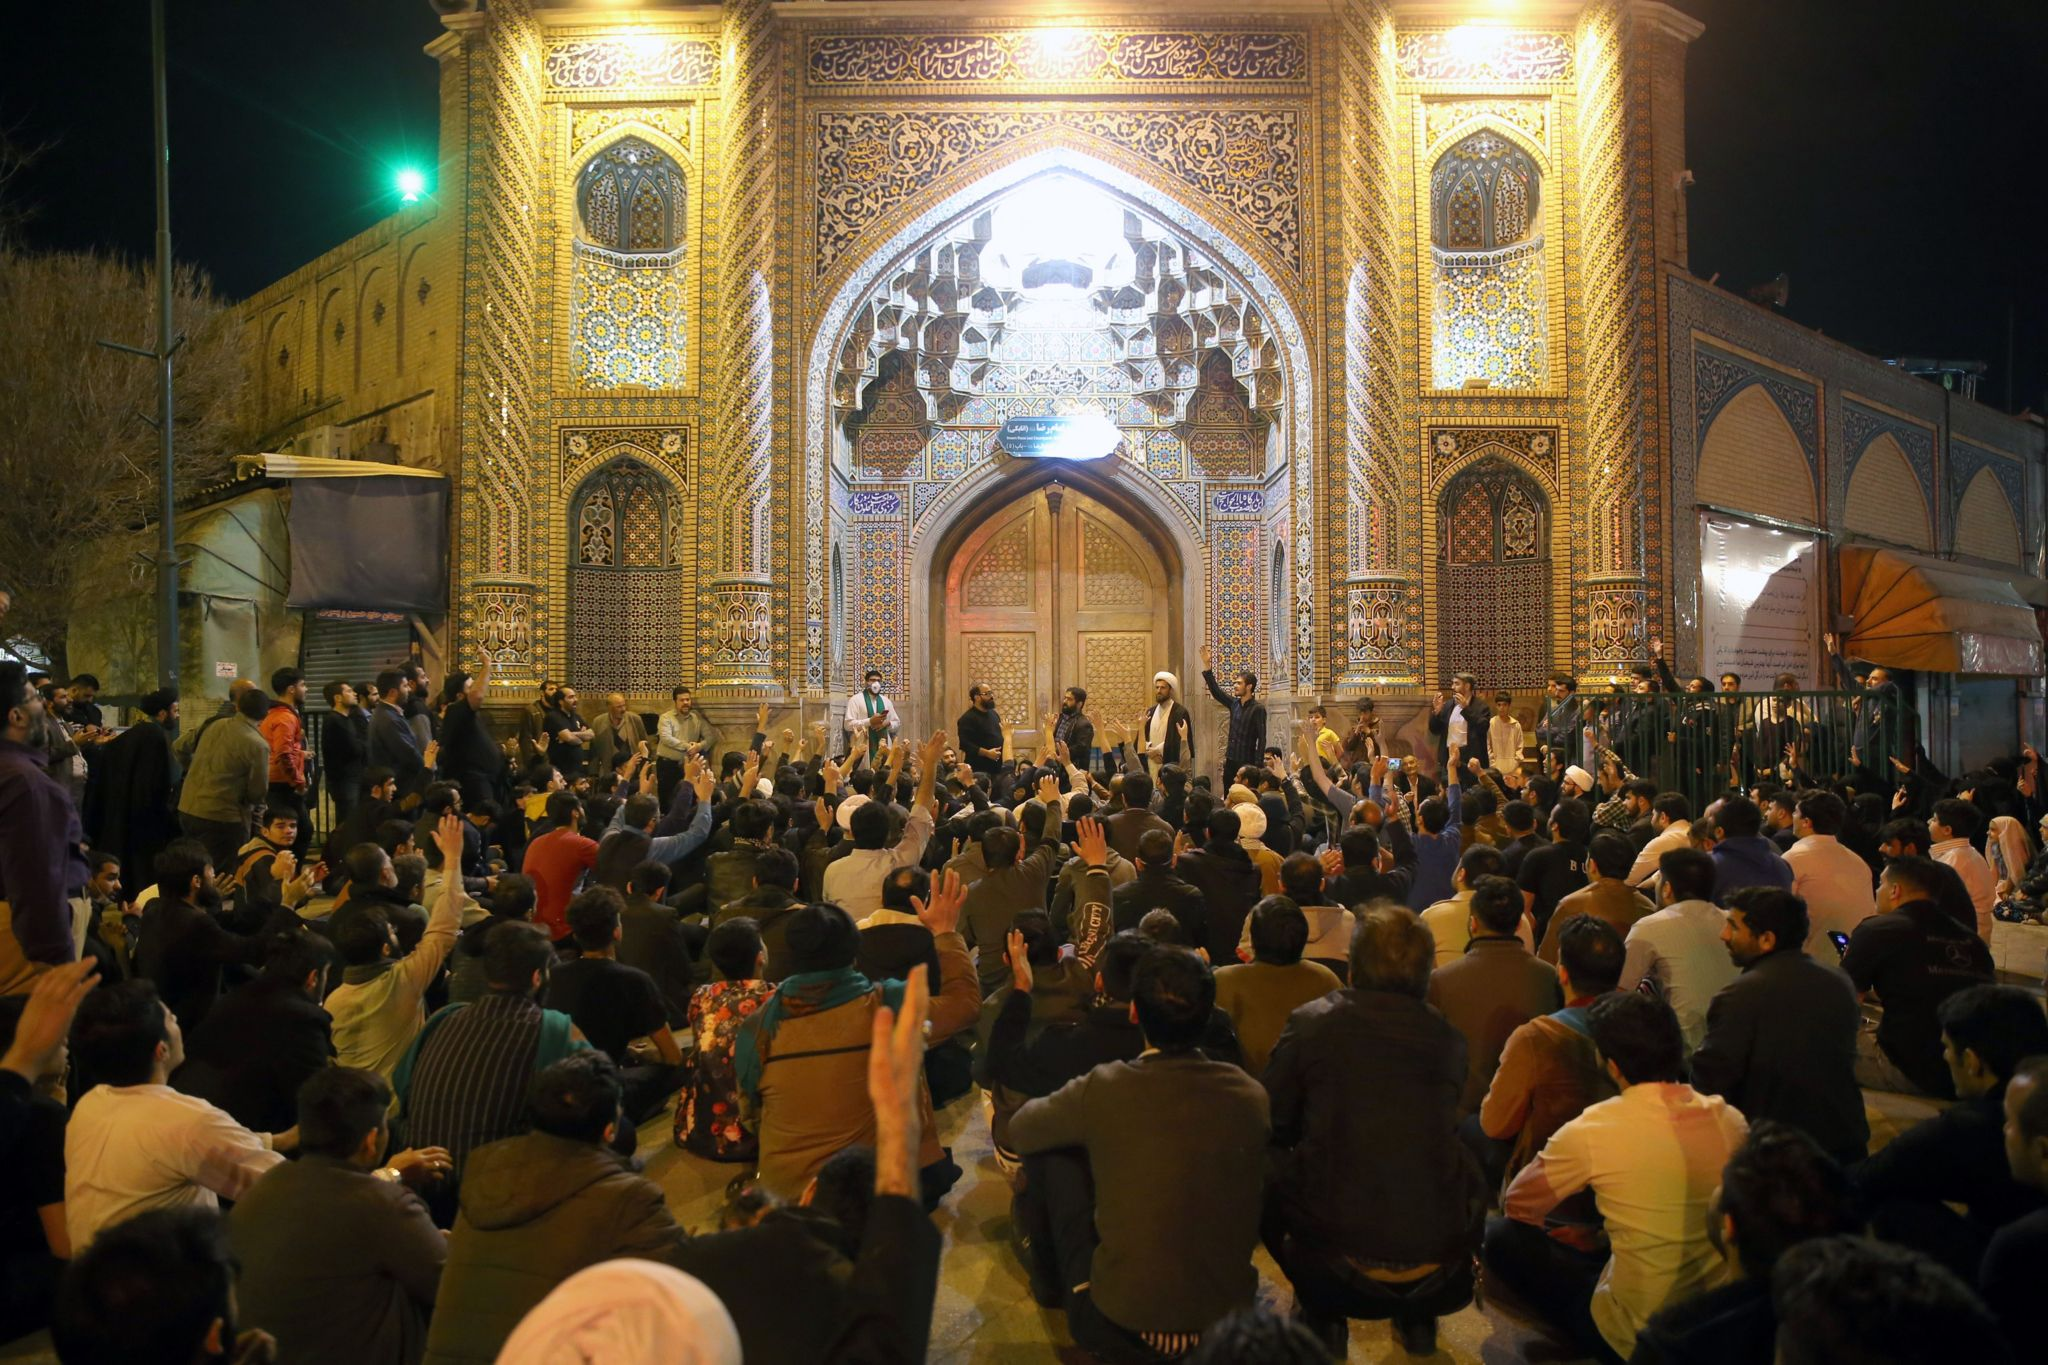 People gather outside the closed doors of the Fatima shrine in Iran's holy city of Qom